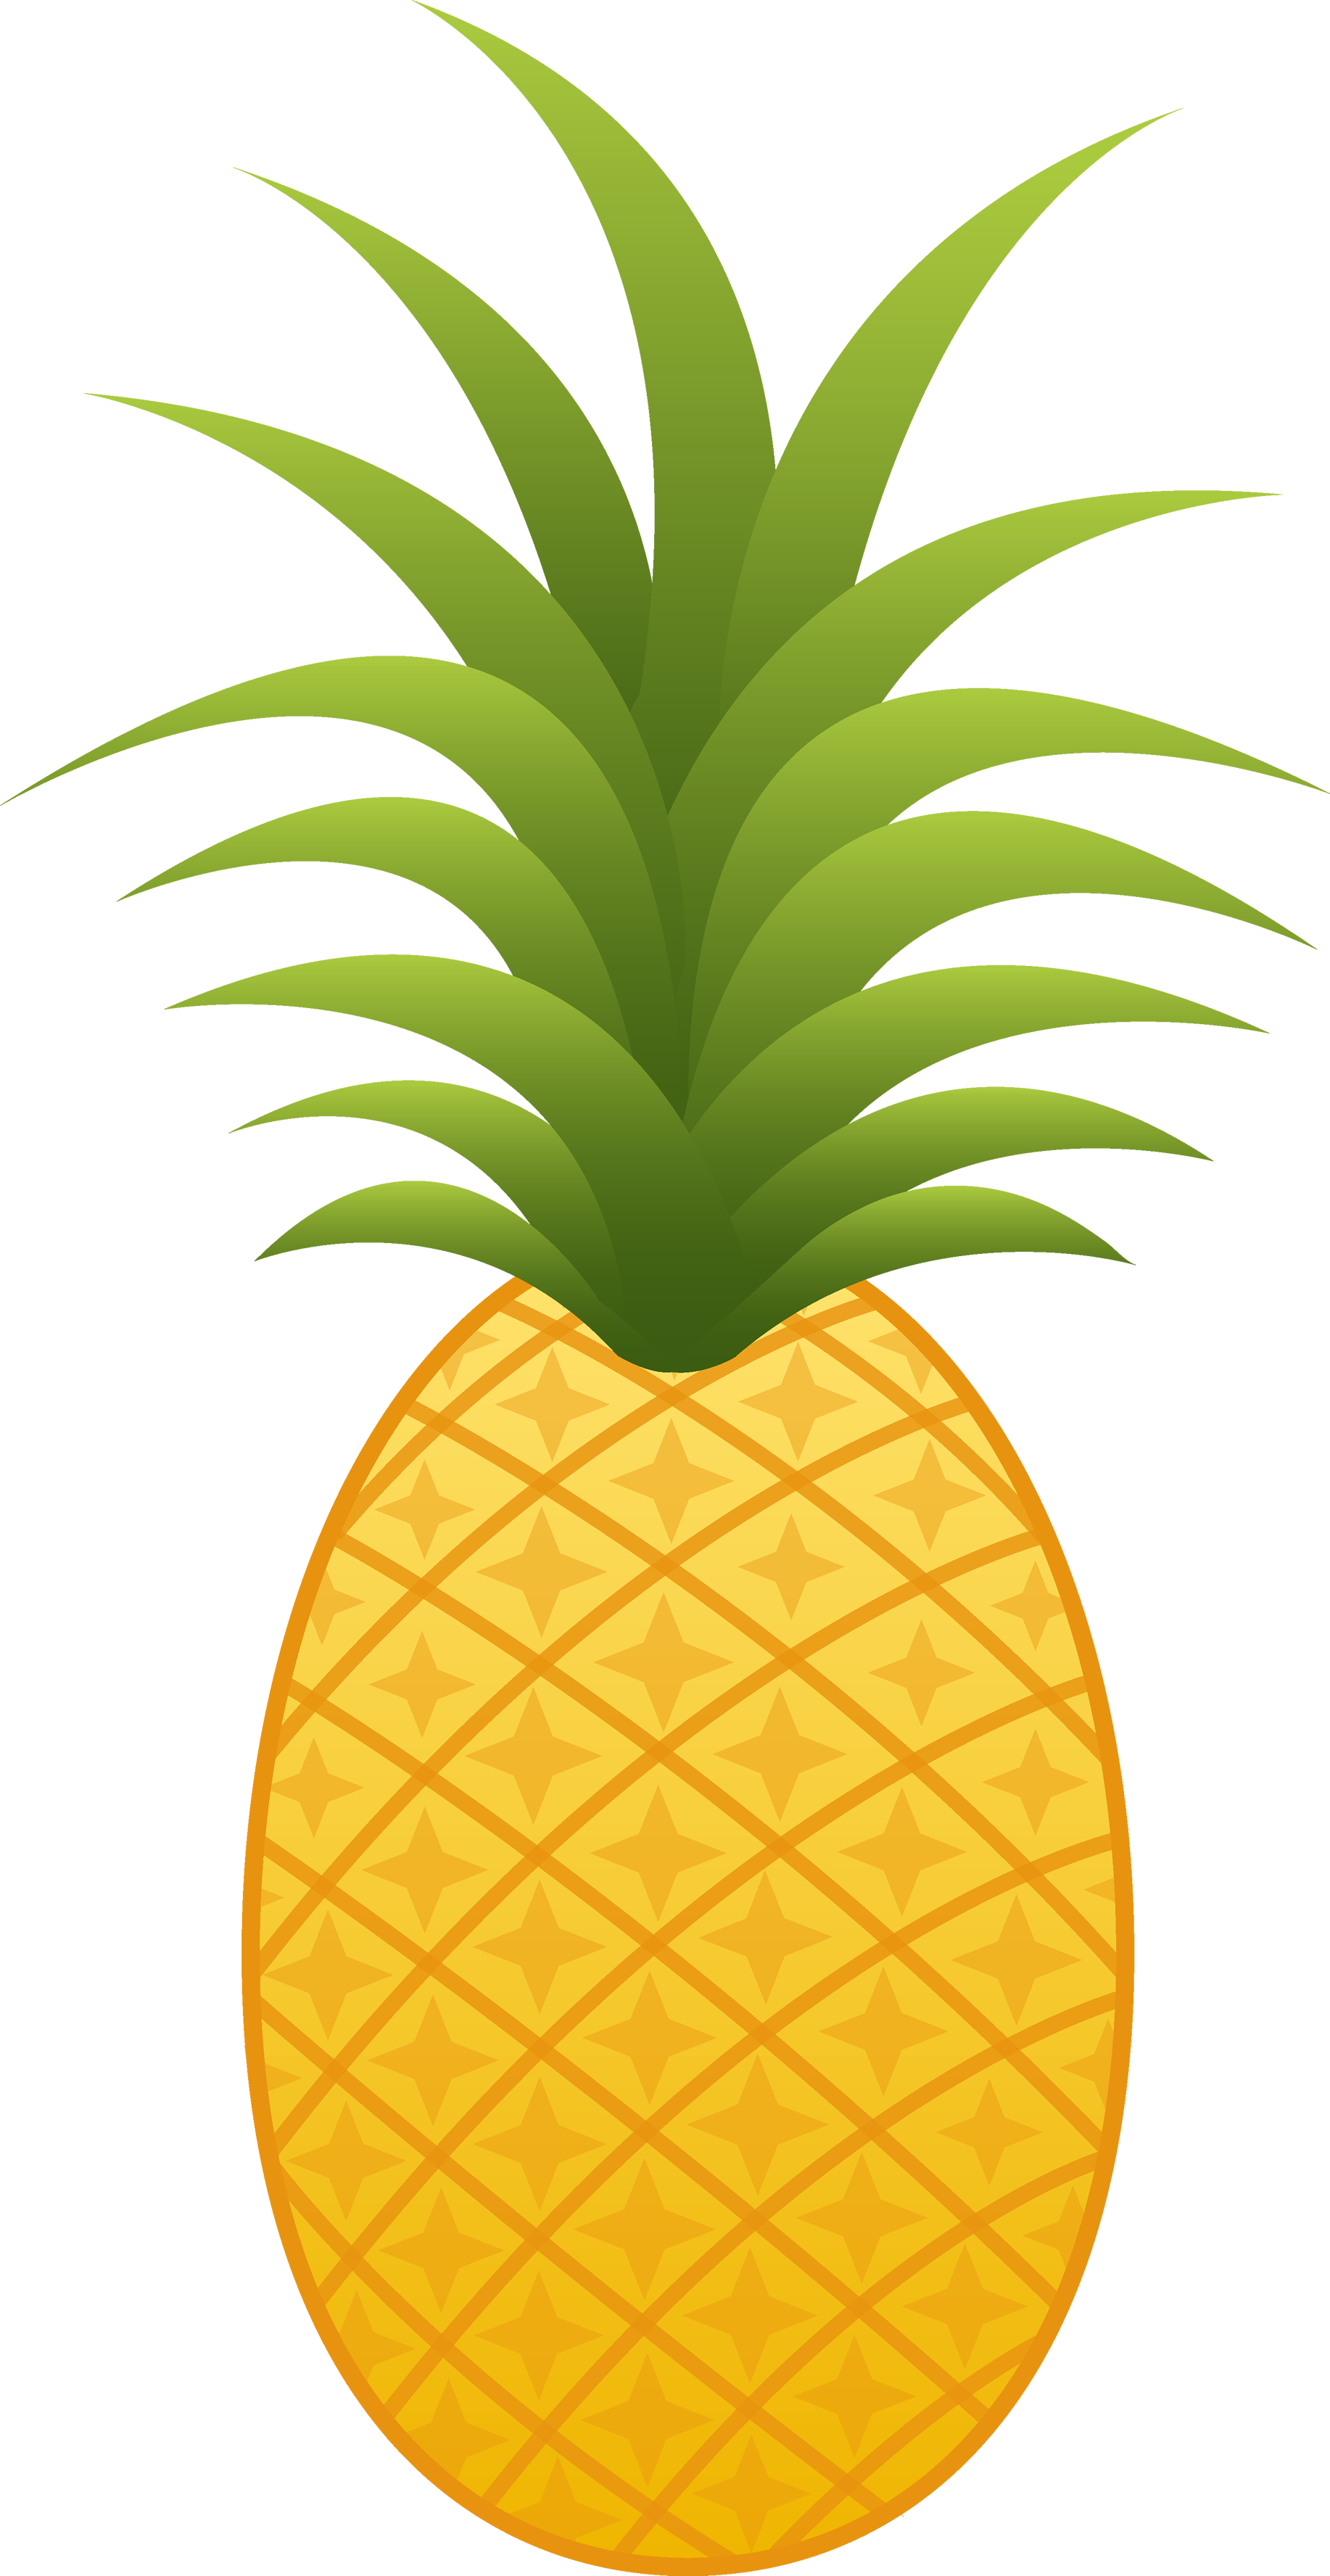 Collection of free abought. Pineapple clipart hawaiian theme